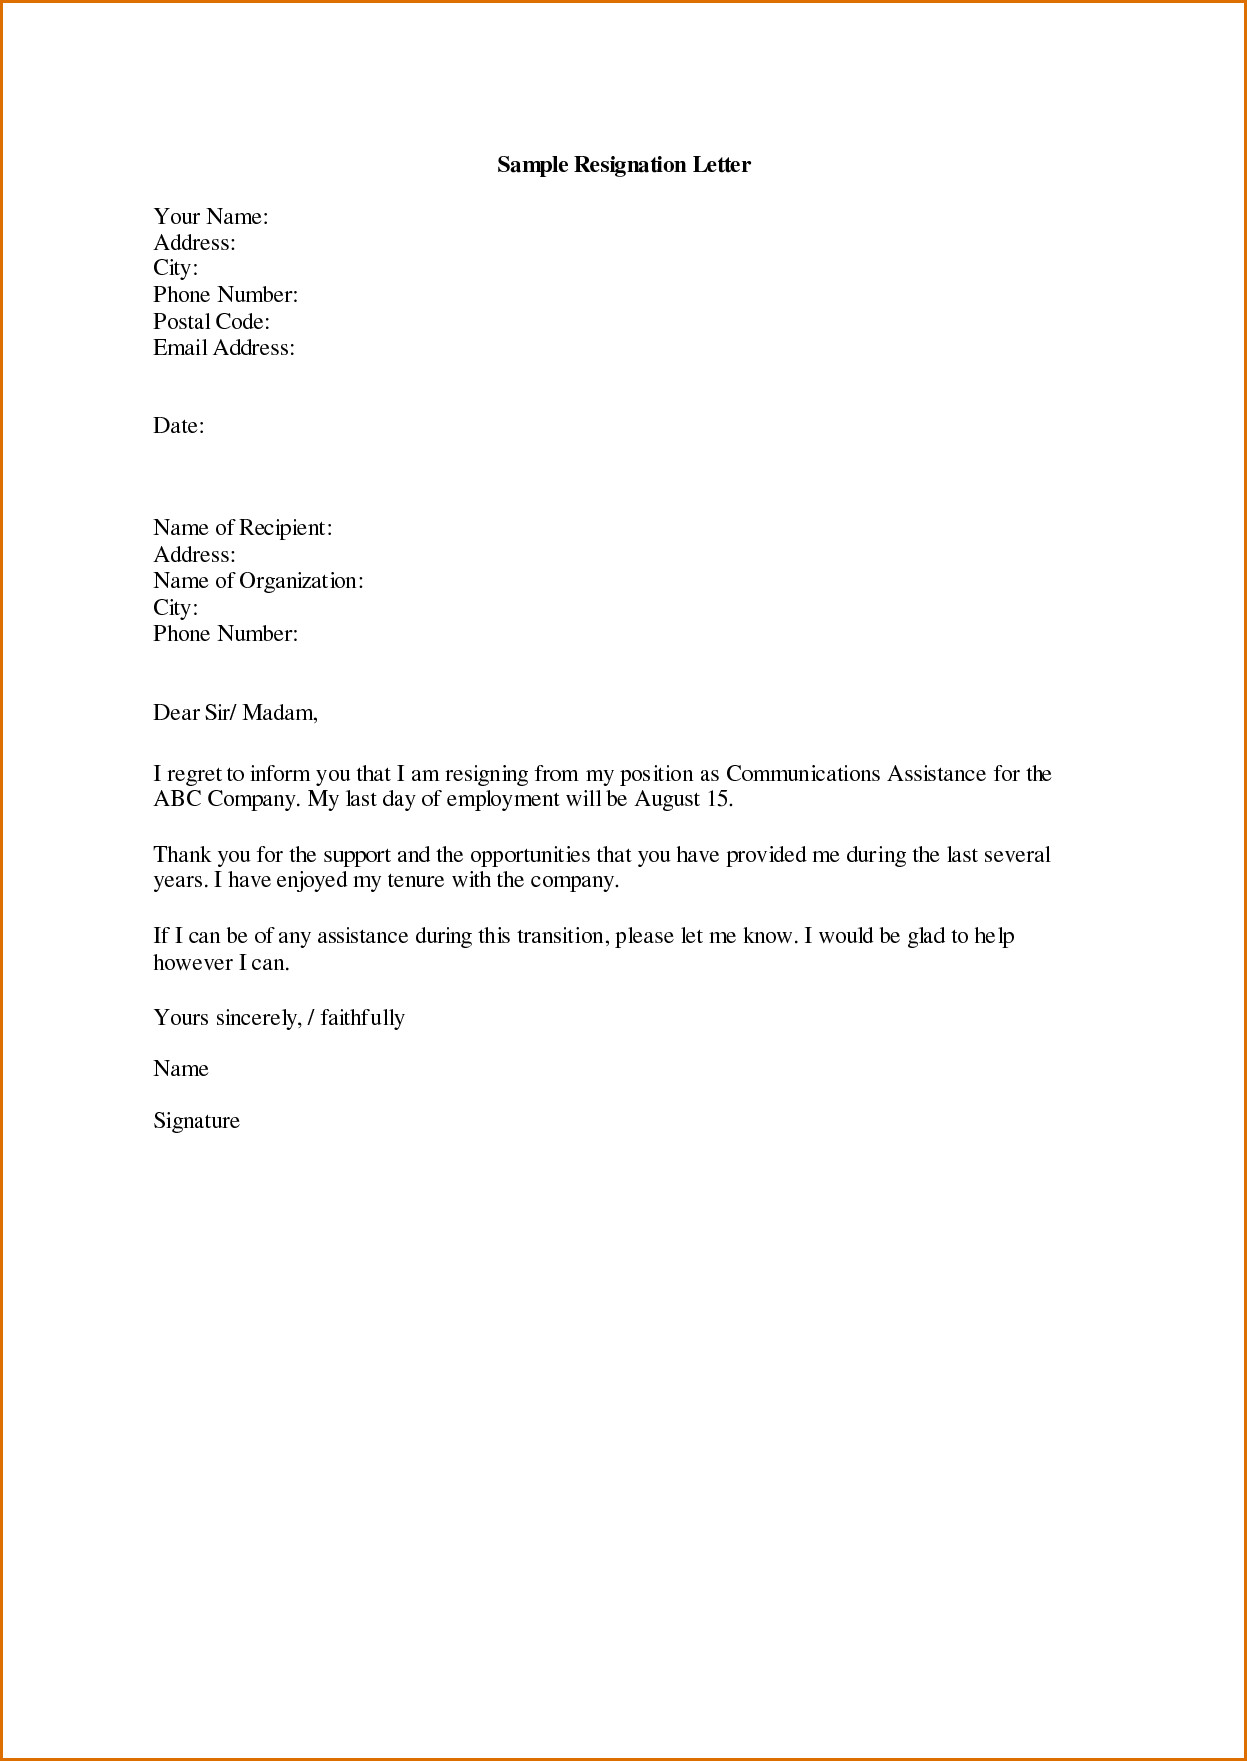 Letter Of Resignation Templates Sample Displaying 16 Images for Letter Of Resignation